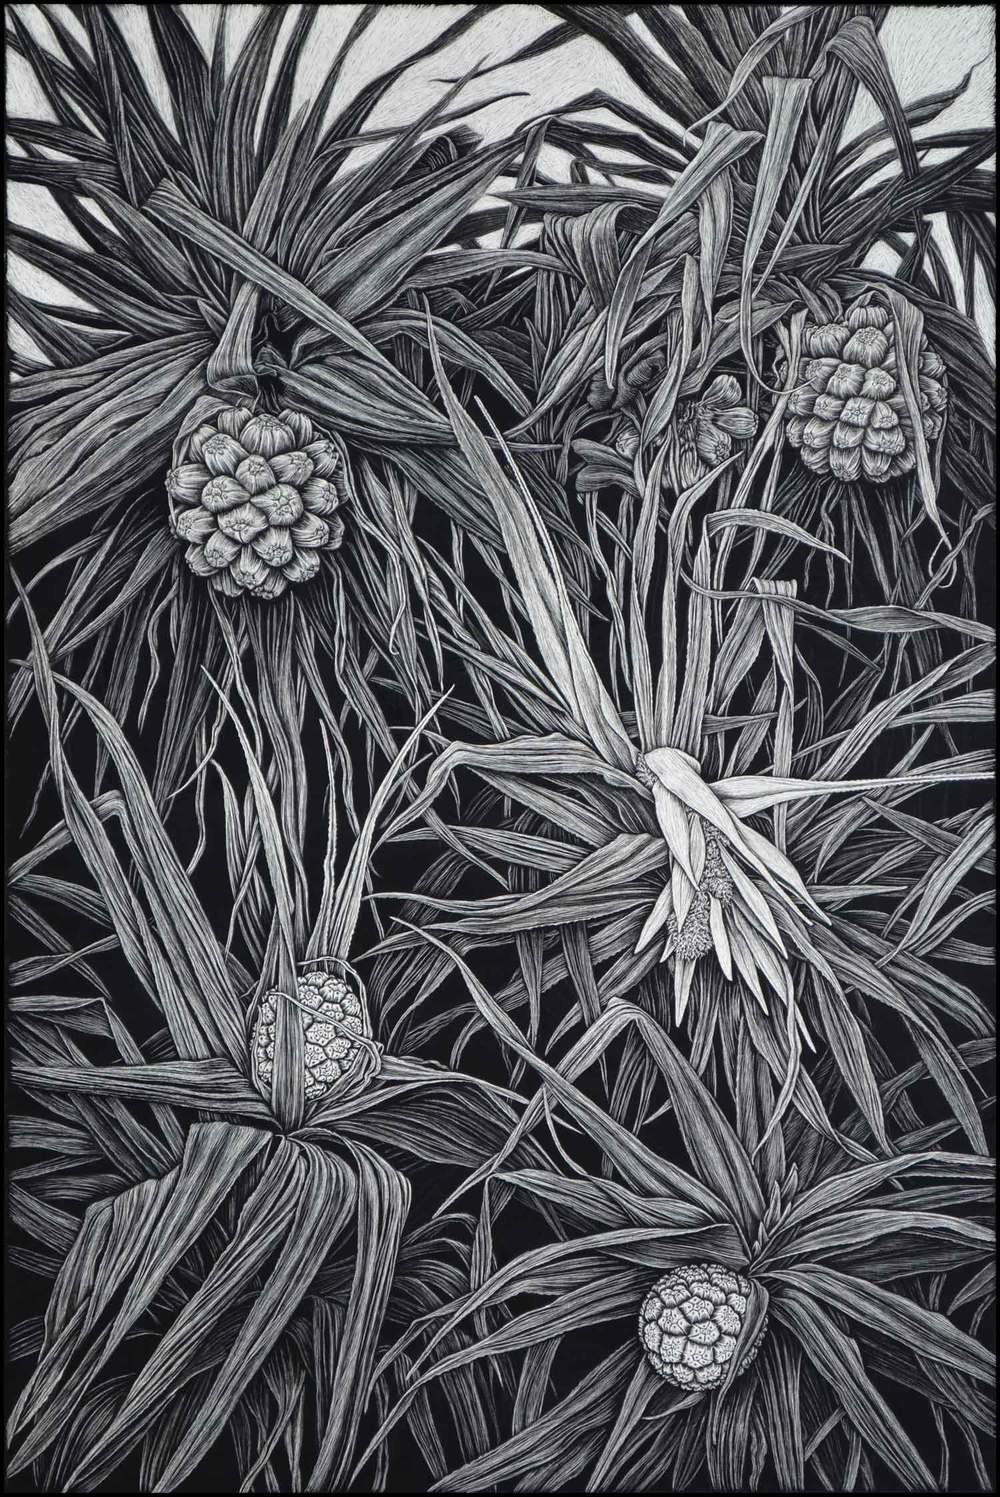 Pandanus in Flower  91.5 x 61 cm    Edition of 50  PIGMENT ON COTTON RAG PAPER  $1,550